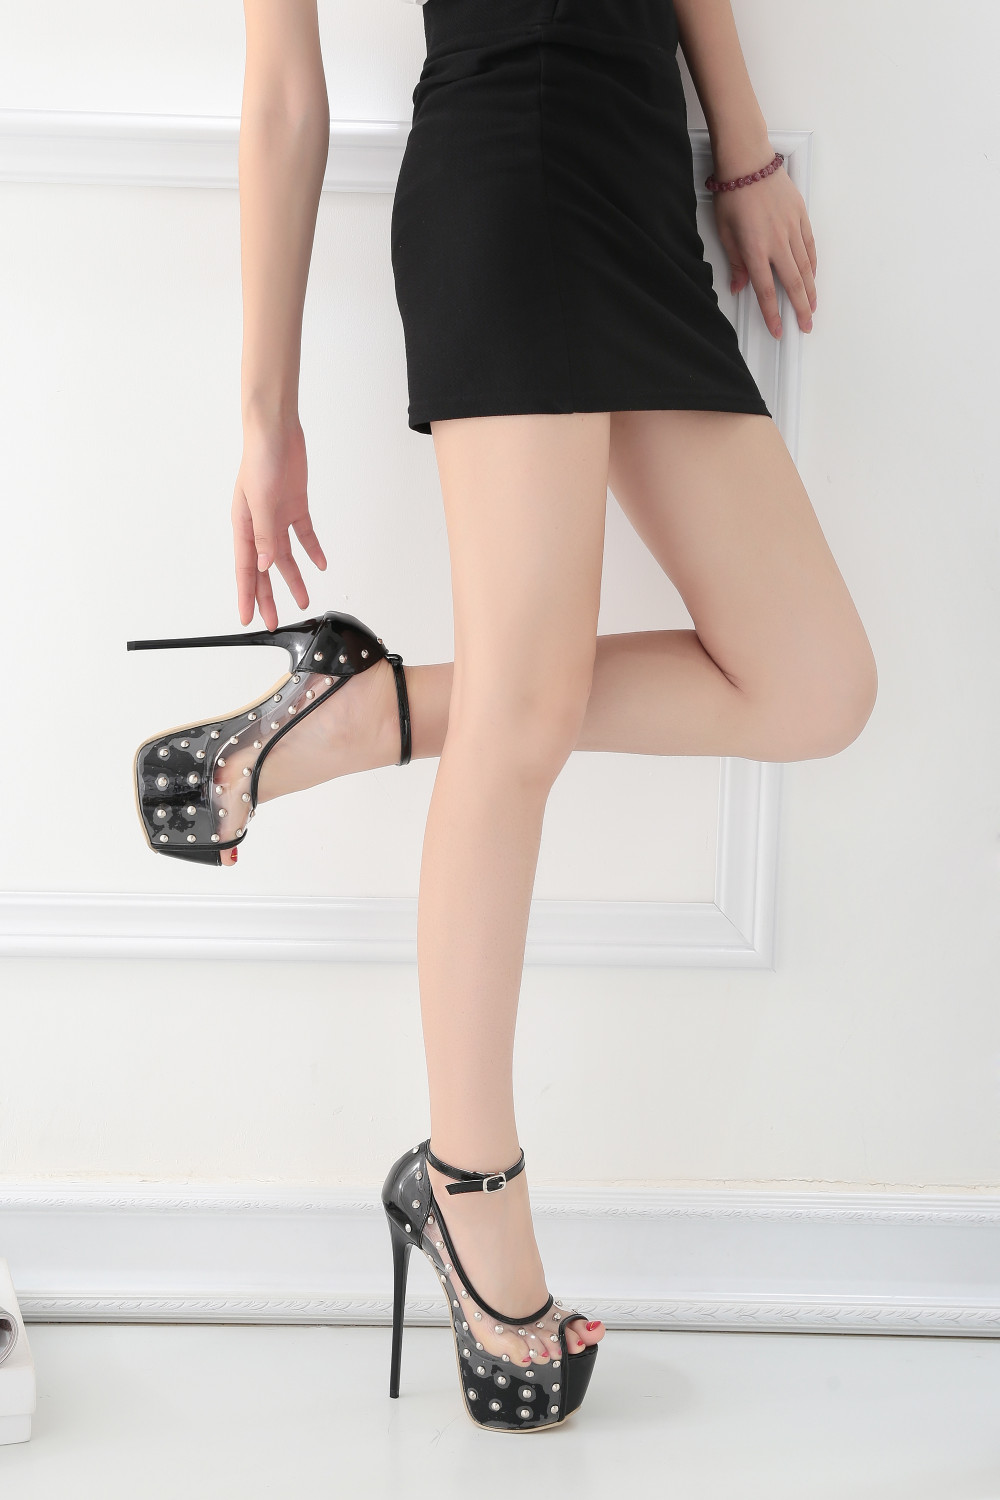 Rivet Studs Ankle Strap High Heel Pumps